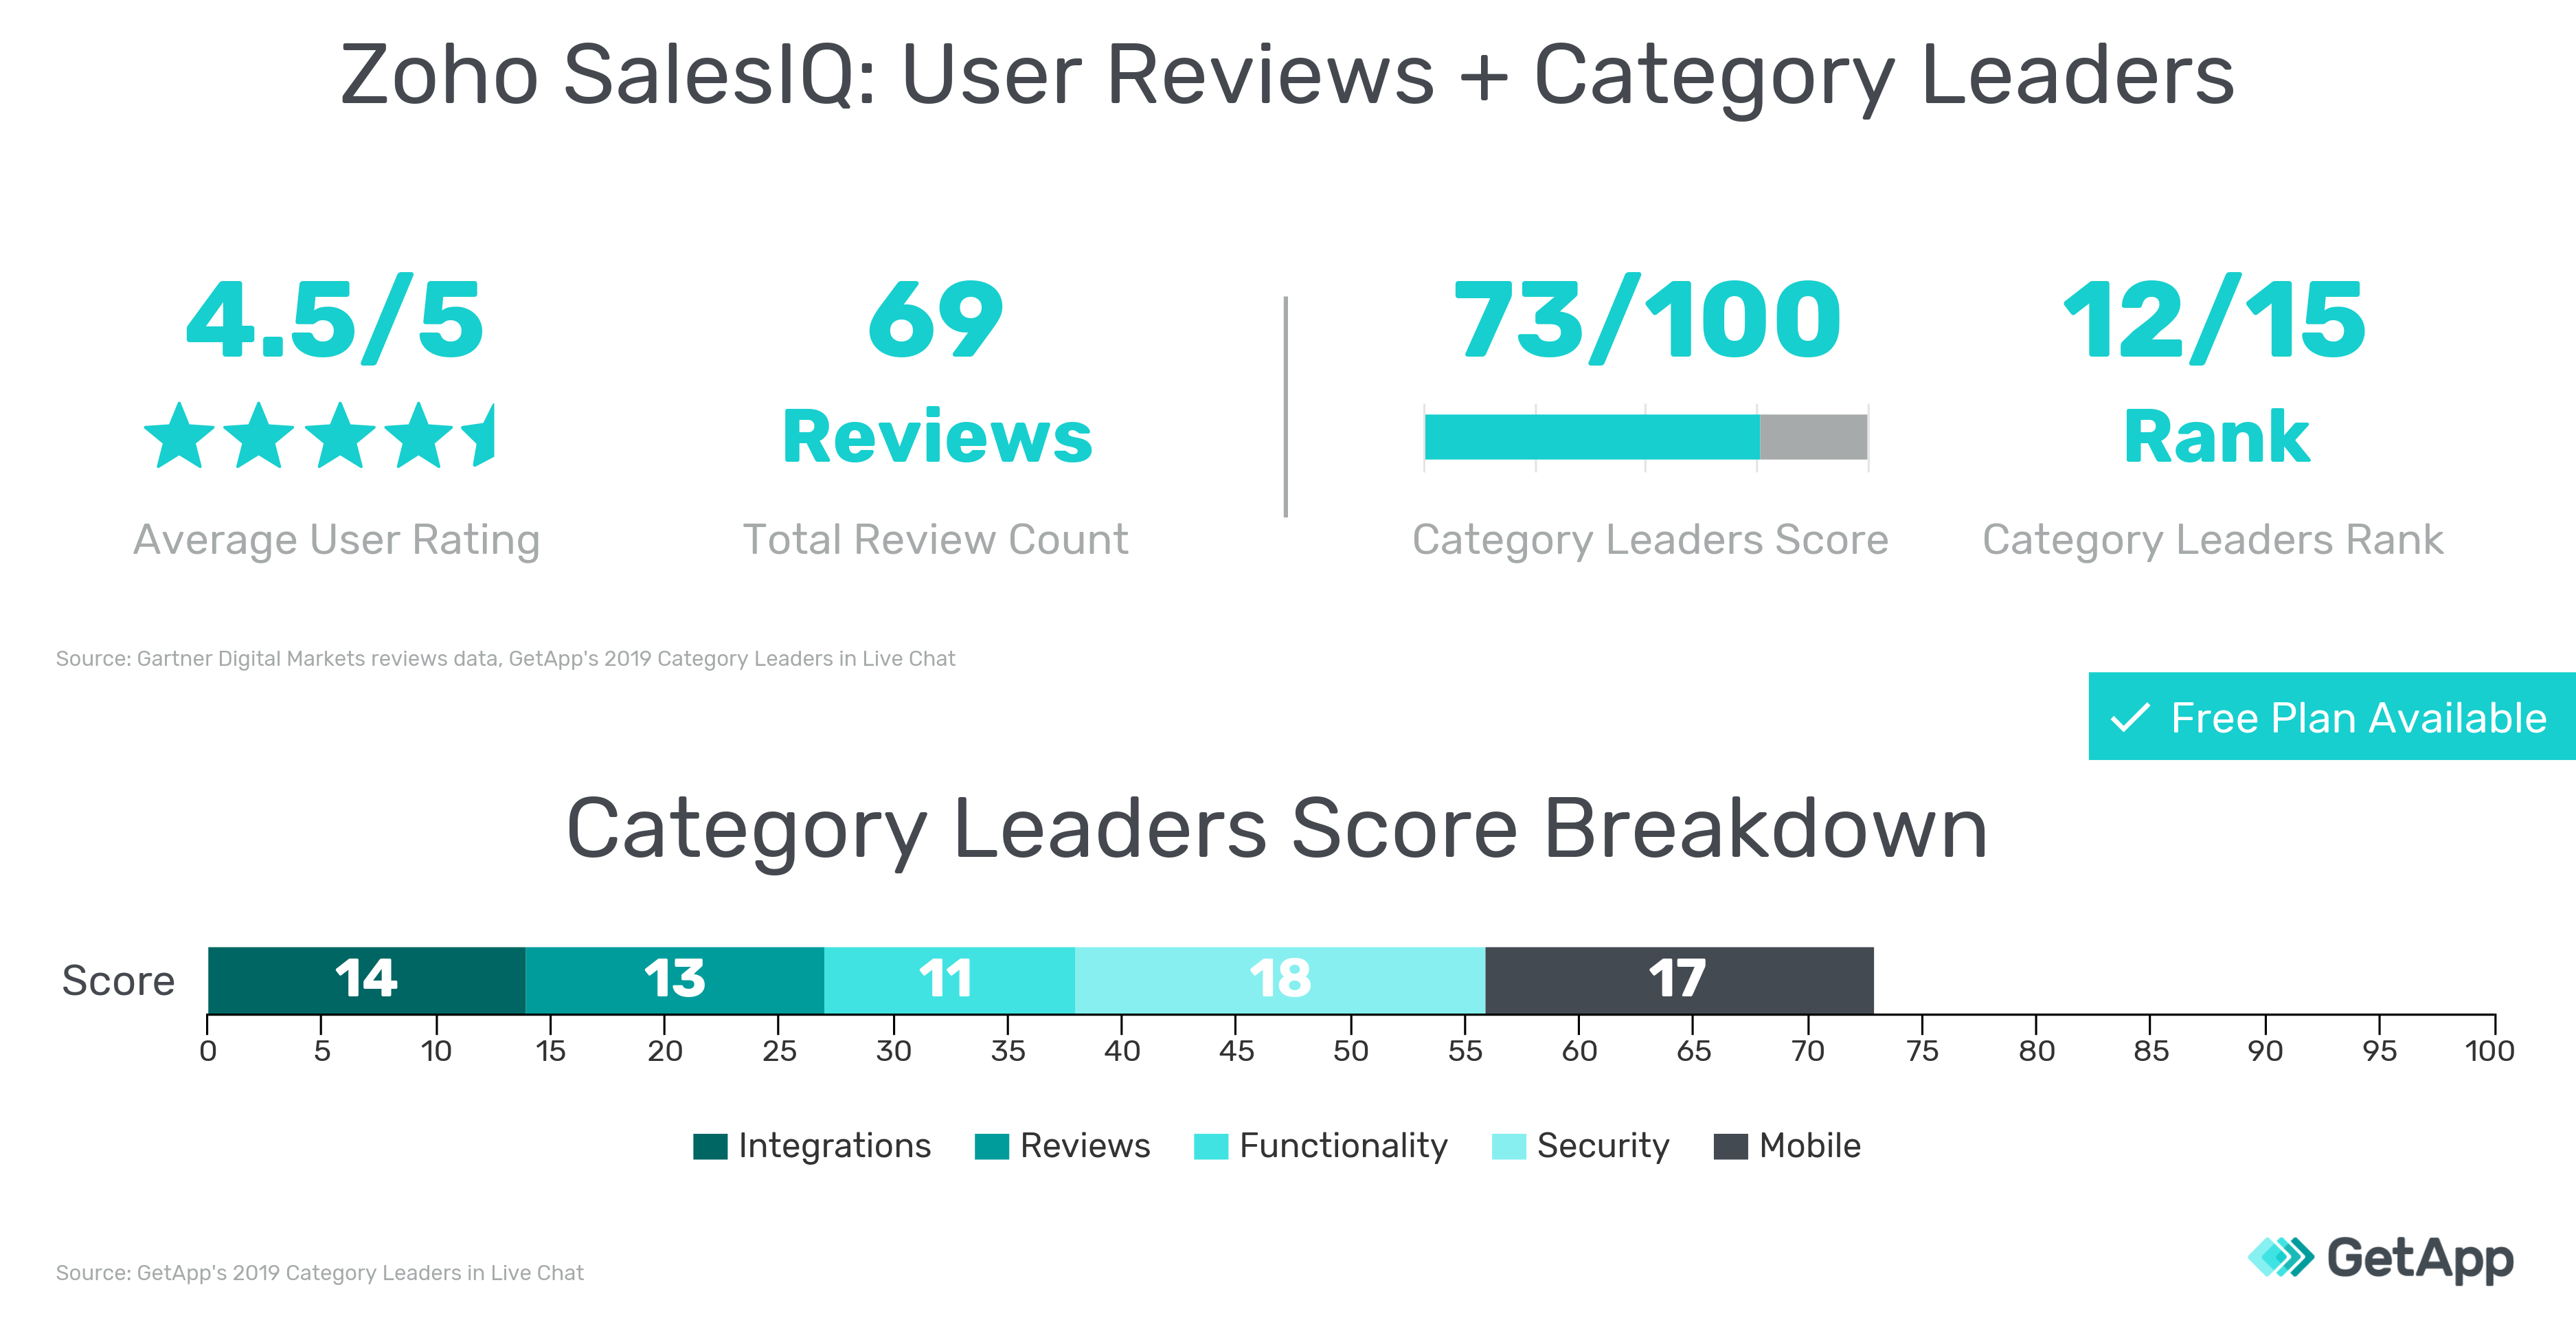 User reviews information and 2019 Category Leaders scores for Zoho SalesIQ graphic